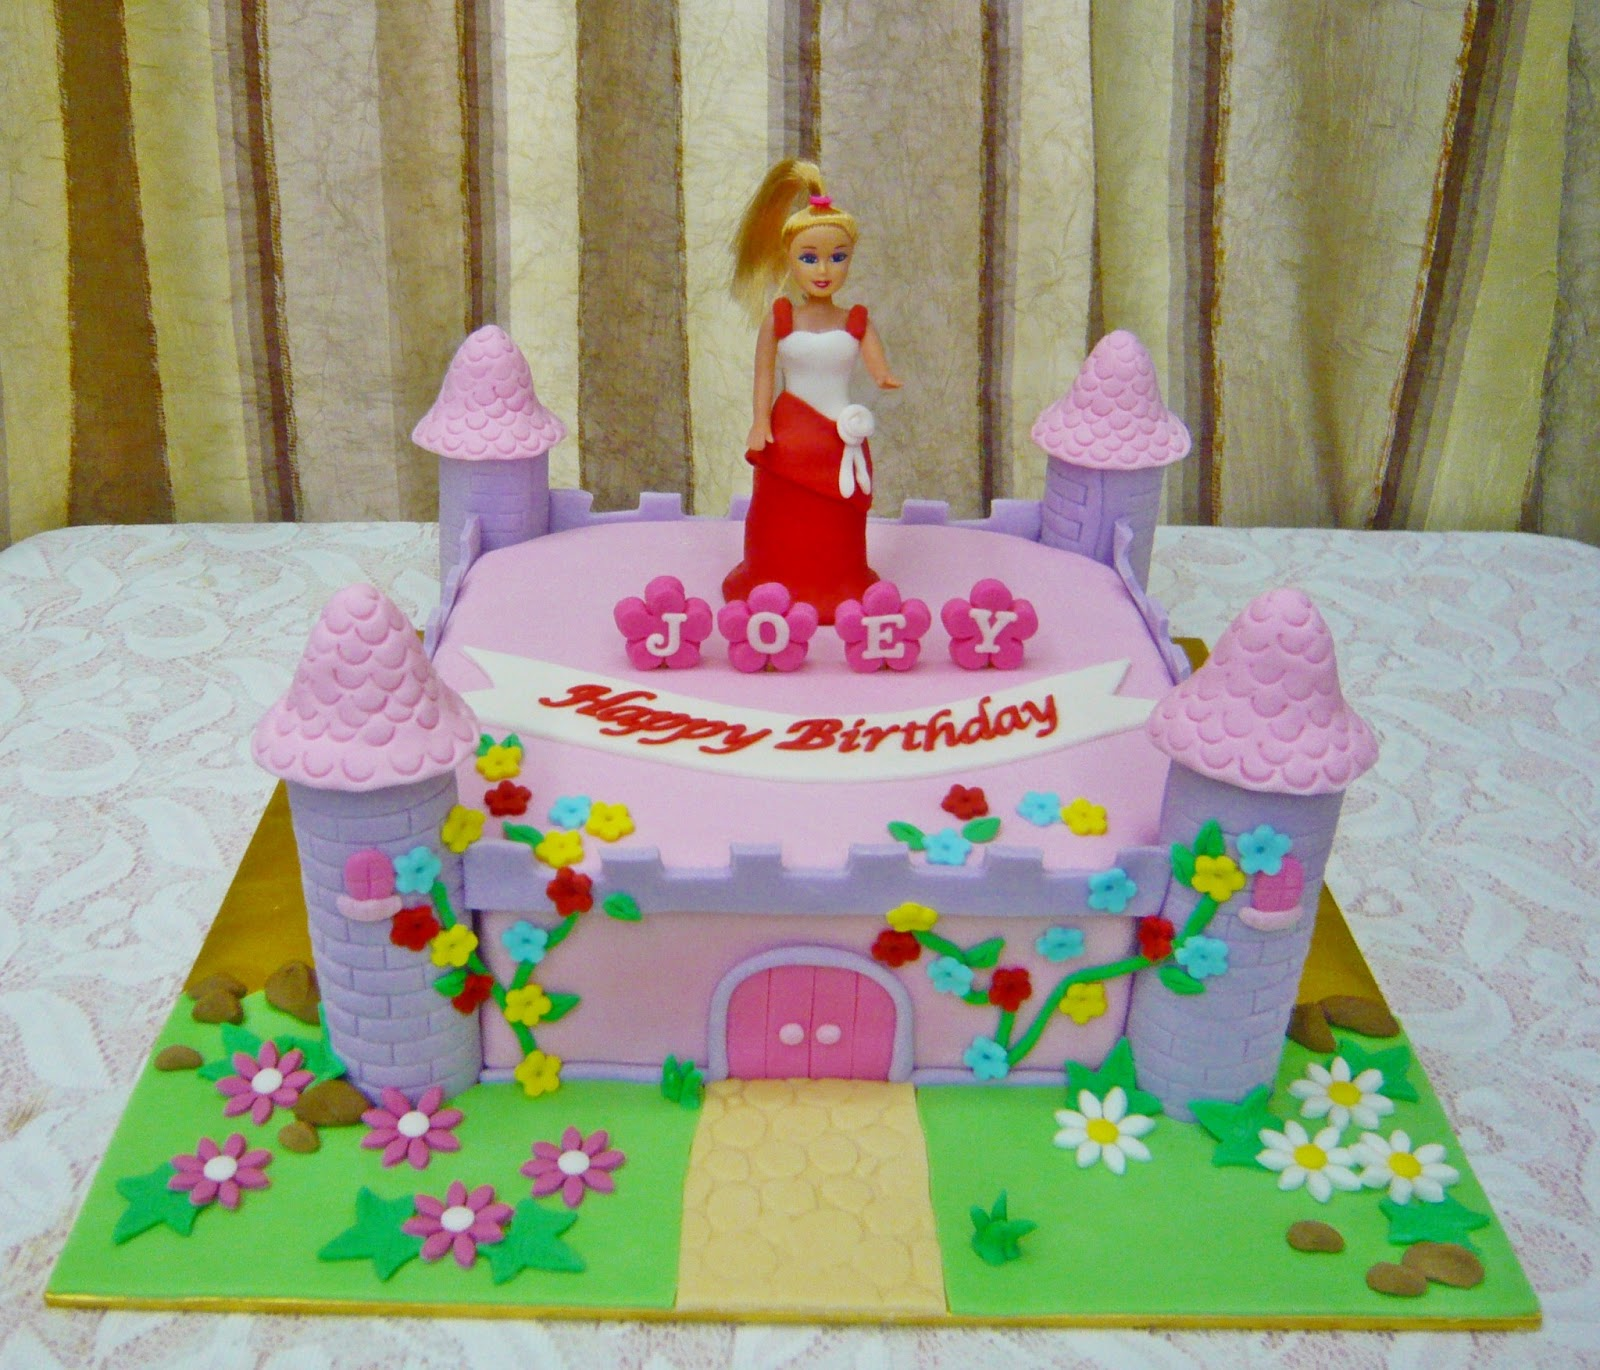 Barbie Castle Cake Images : Jenn Cupcakes & Muffins: Castle Cake with Barbie